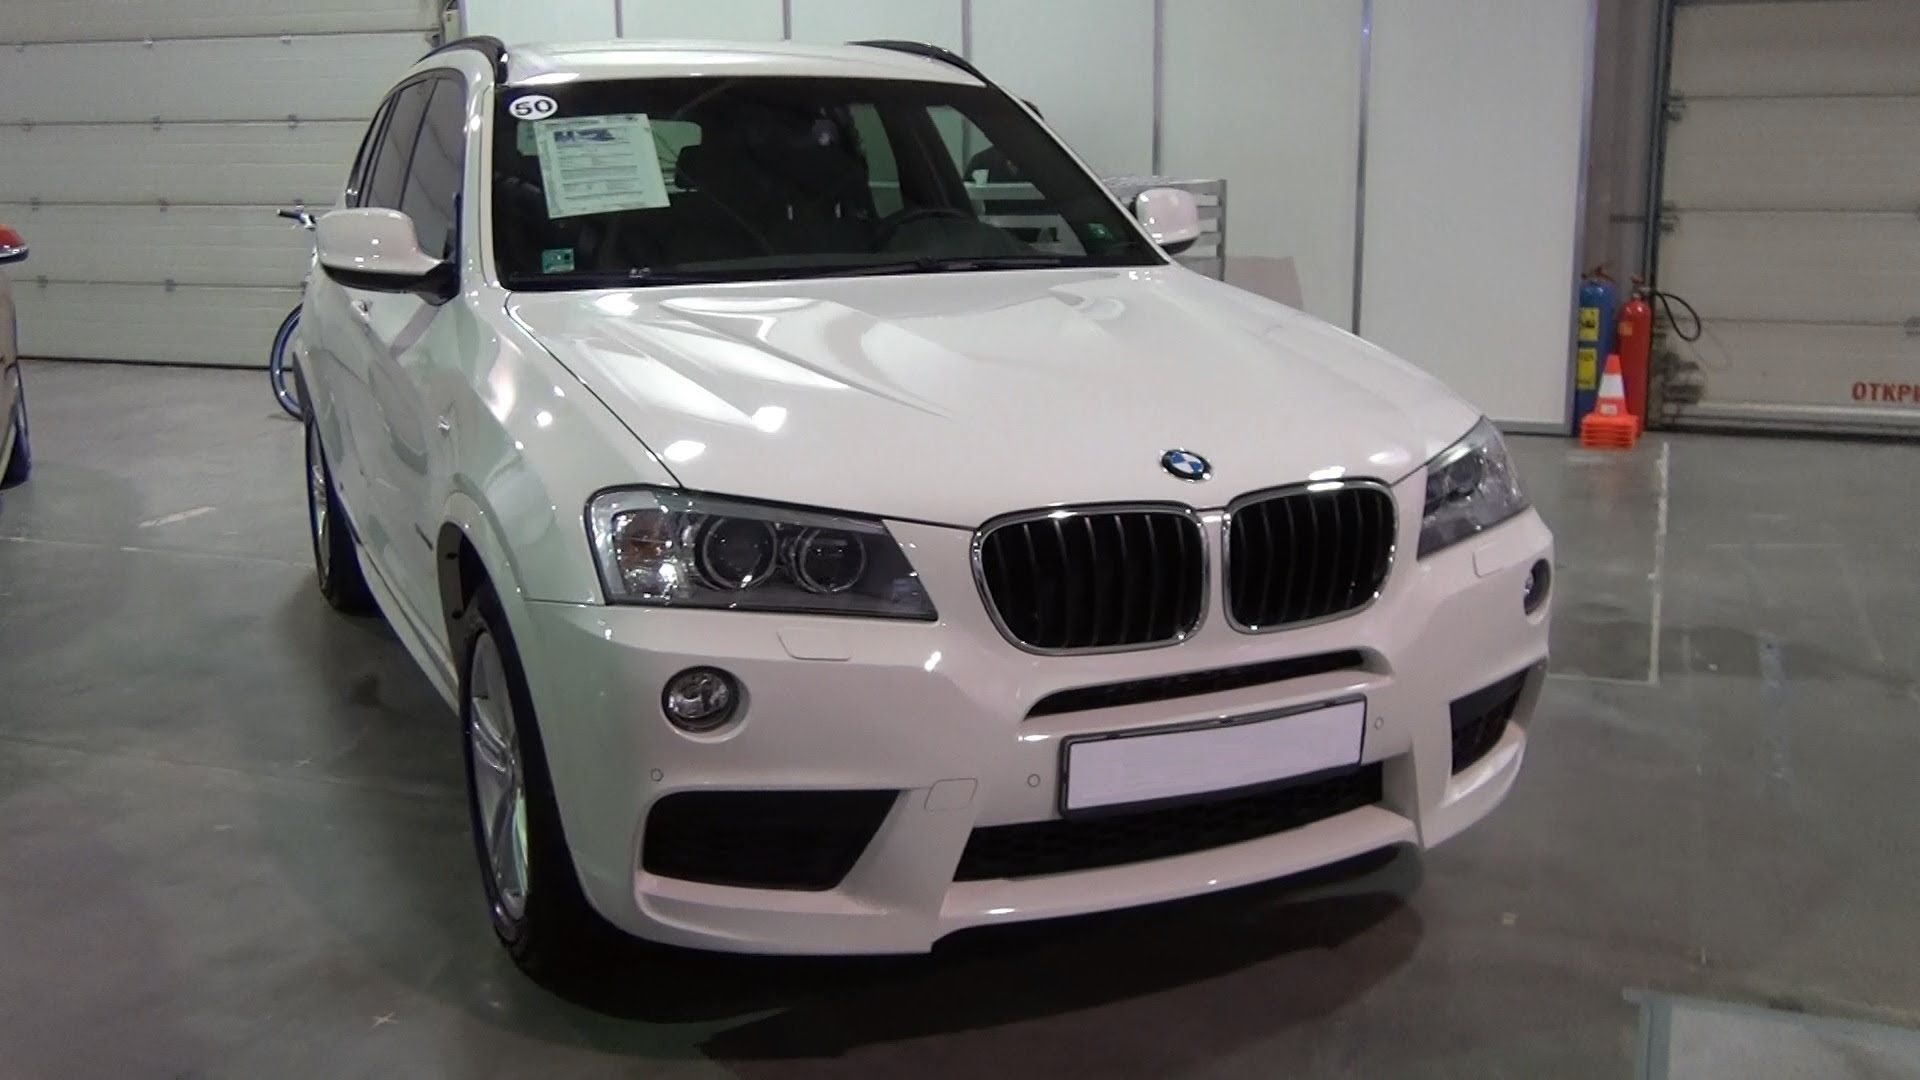 Bmw X3 Xdrive 20d 2013 White With Images Bmw Bmw X3 Cool Cars